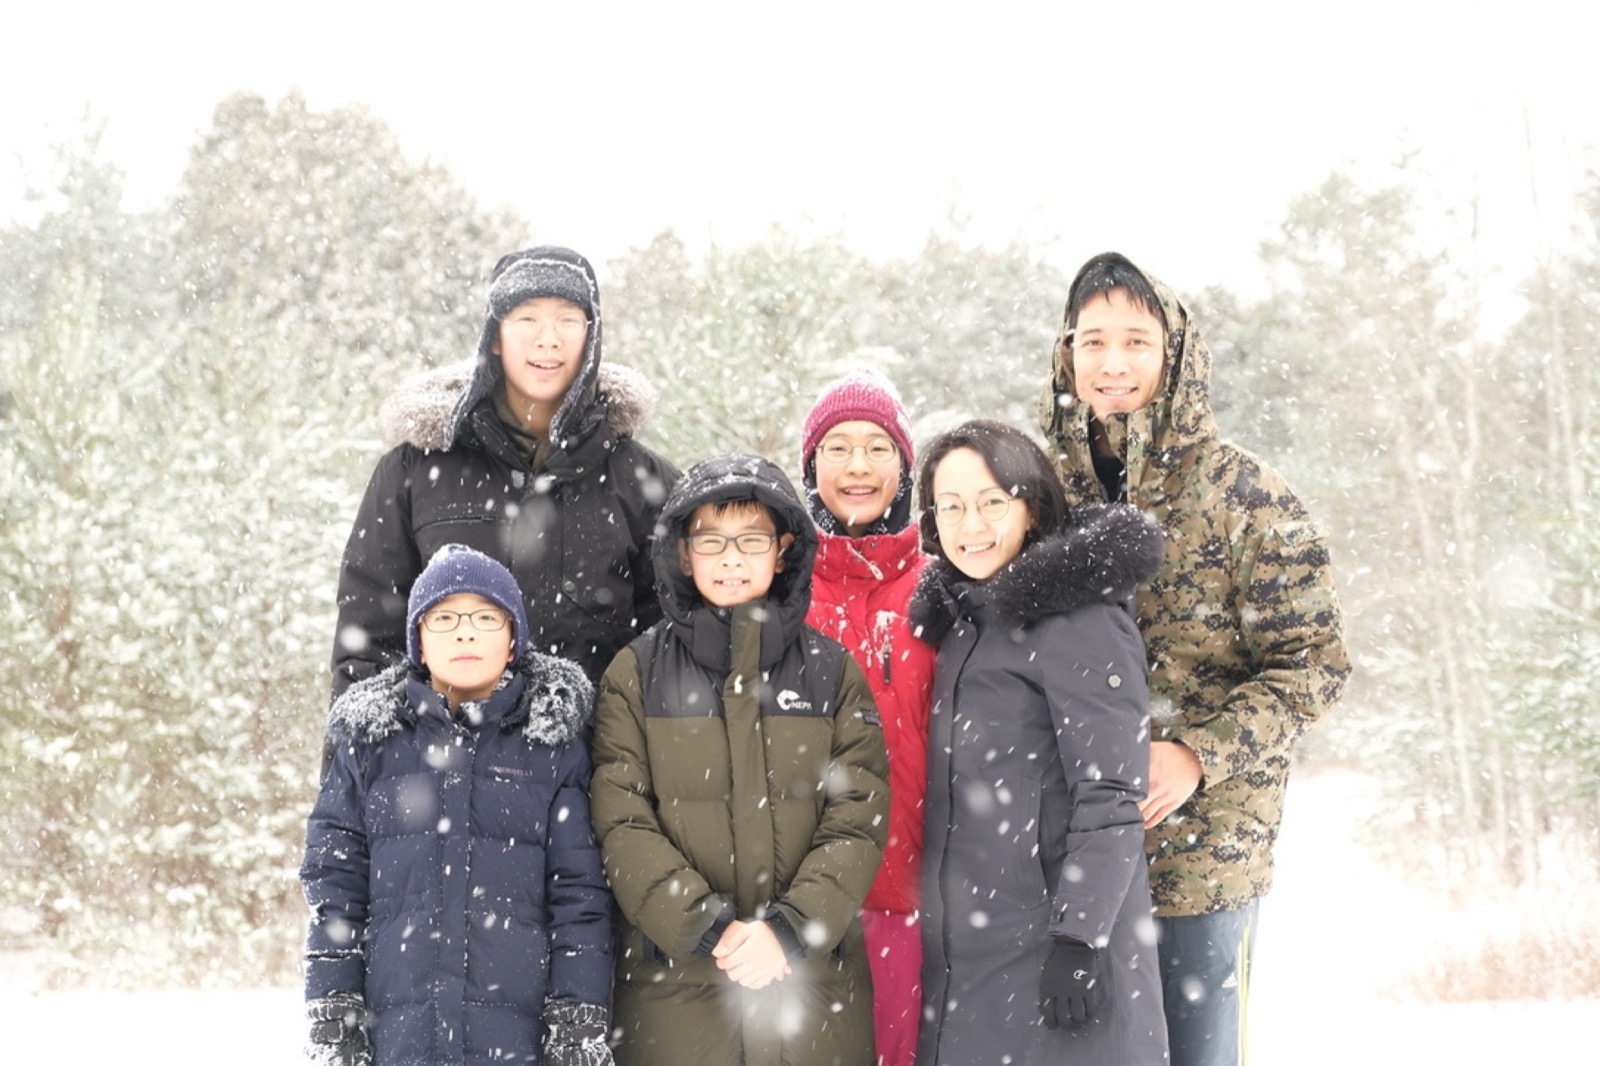 Peter and Elaine Yoon with their children